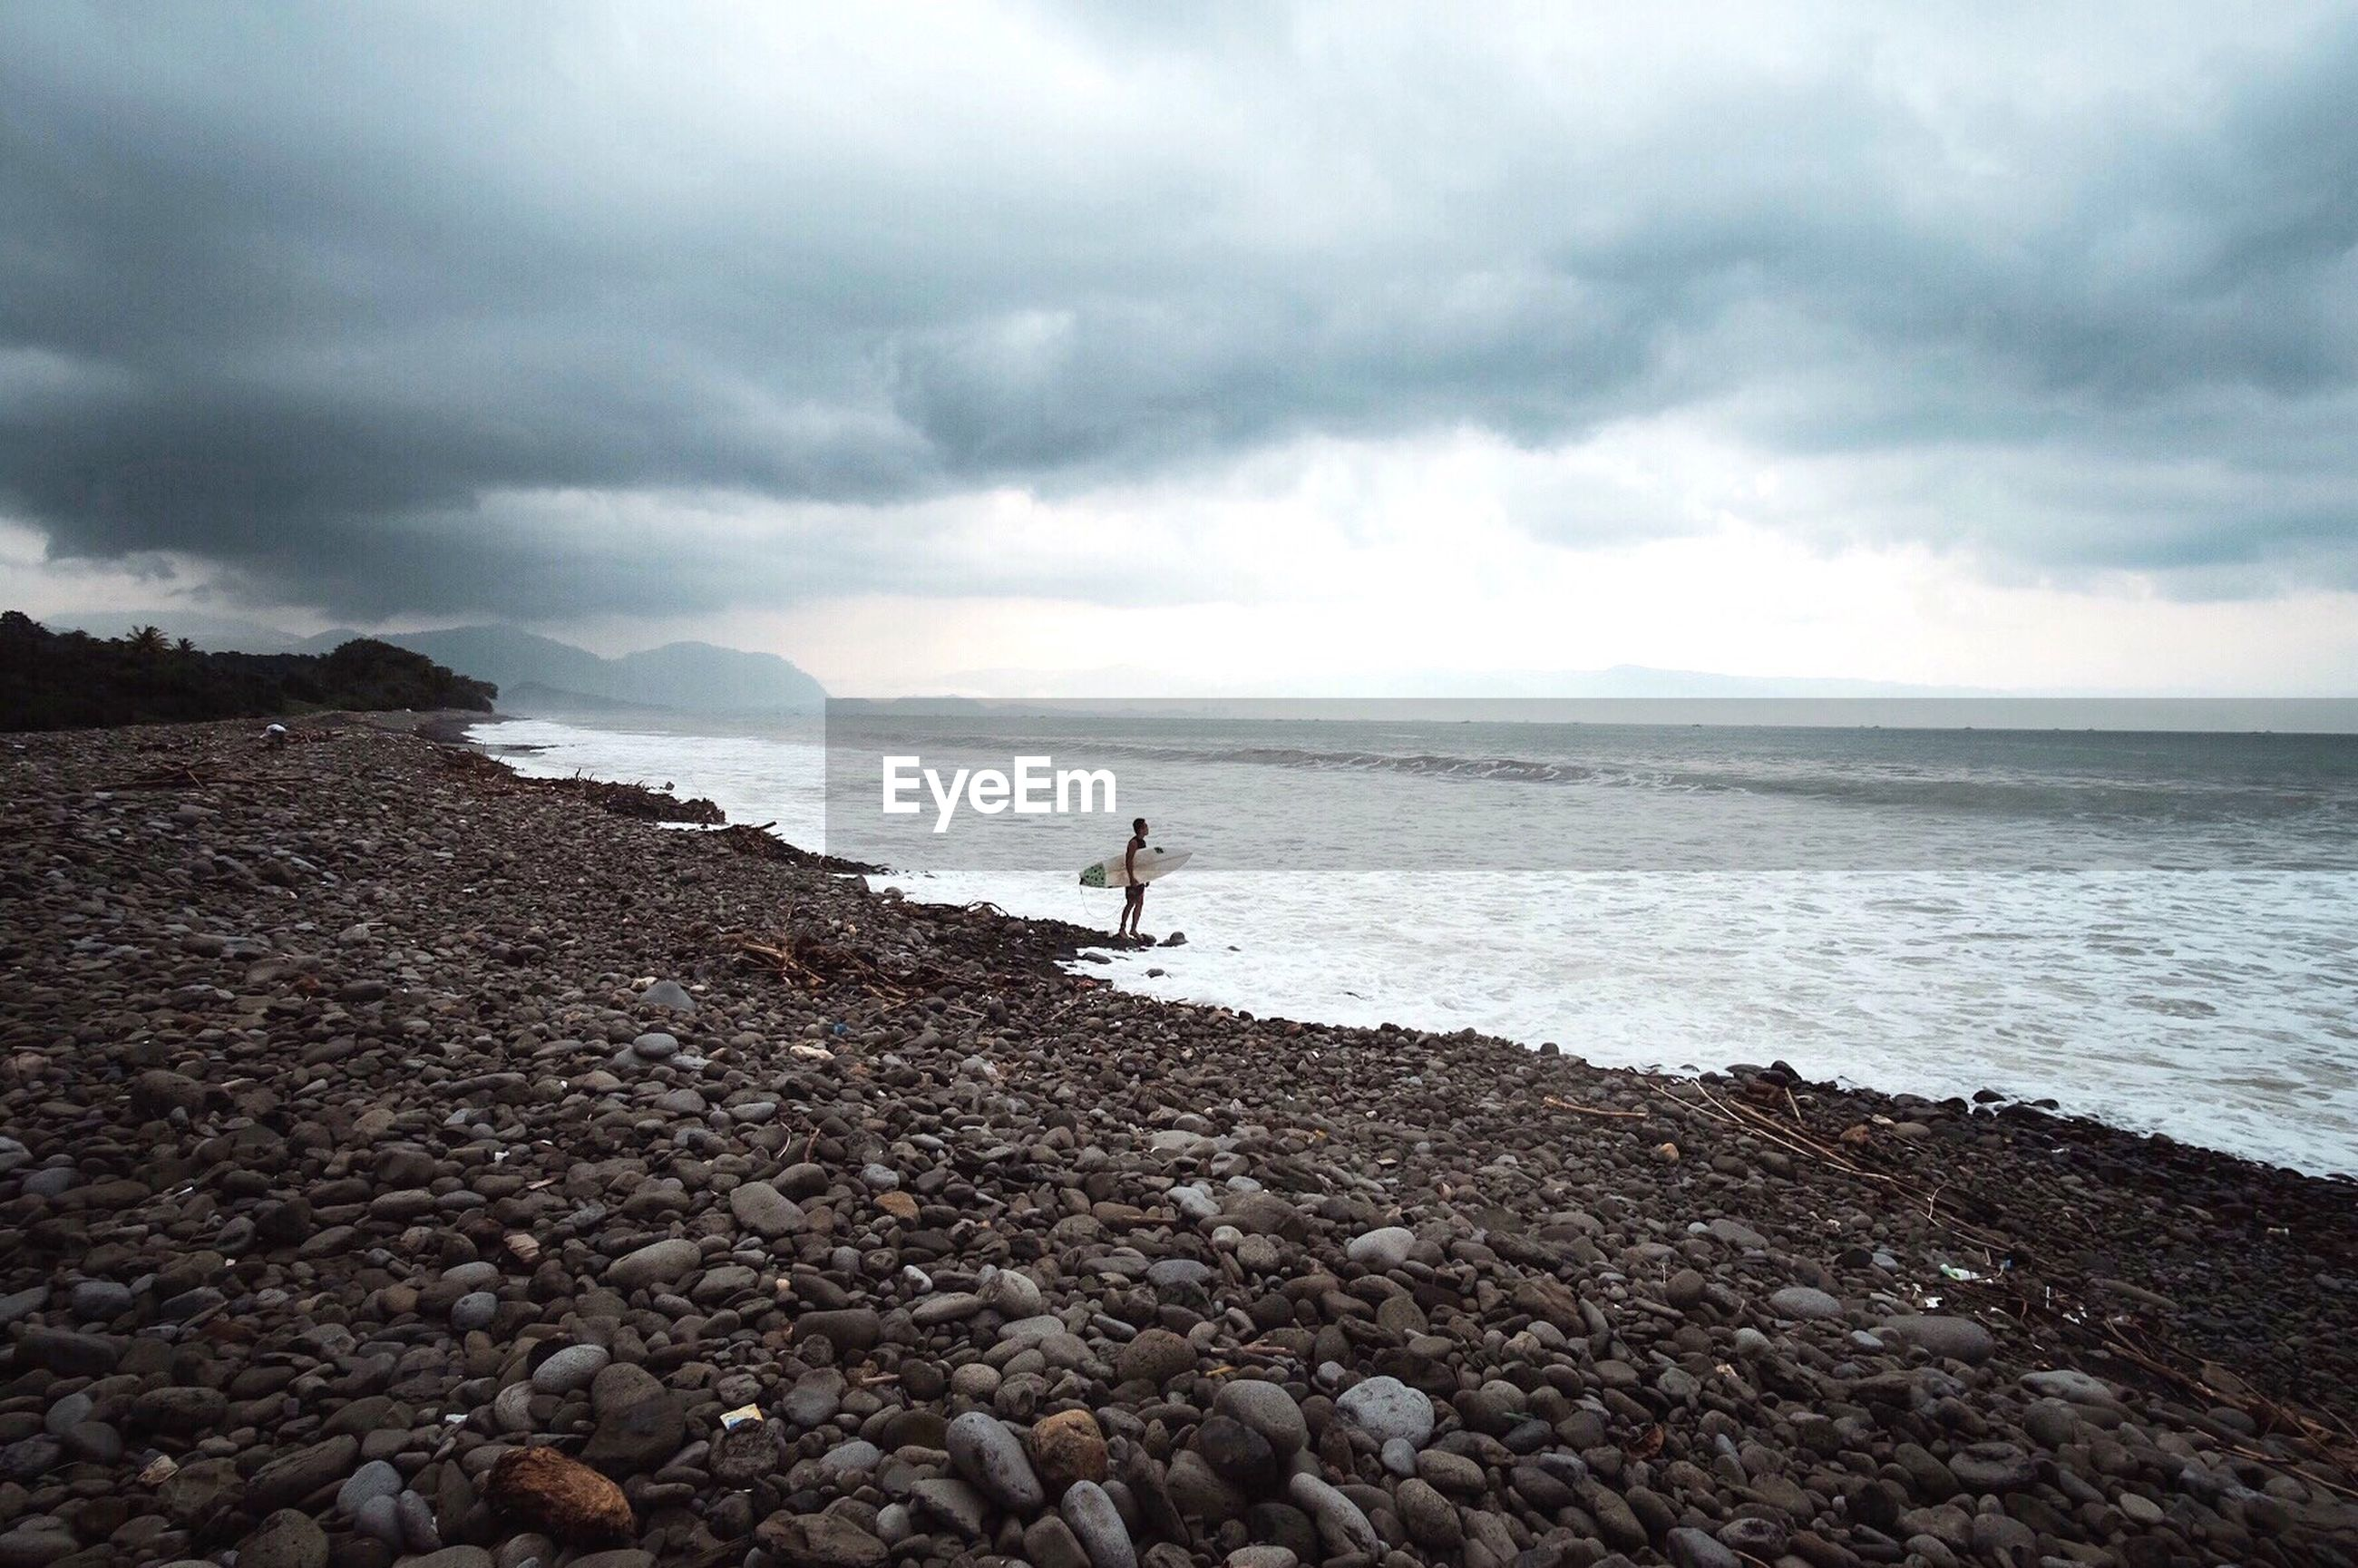 Man standing with surfboard at shore against cloudy sky